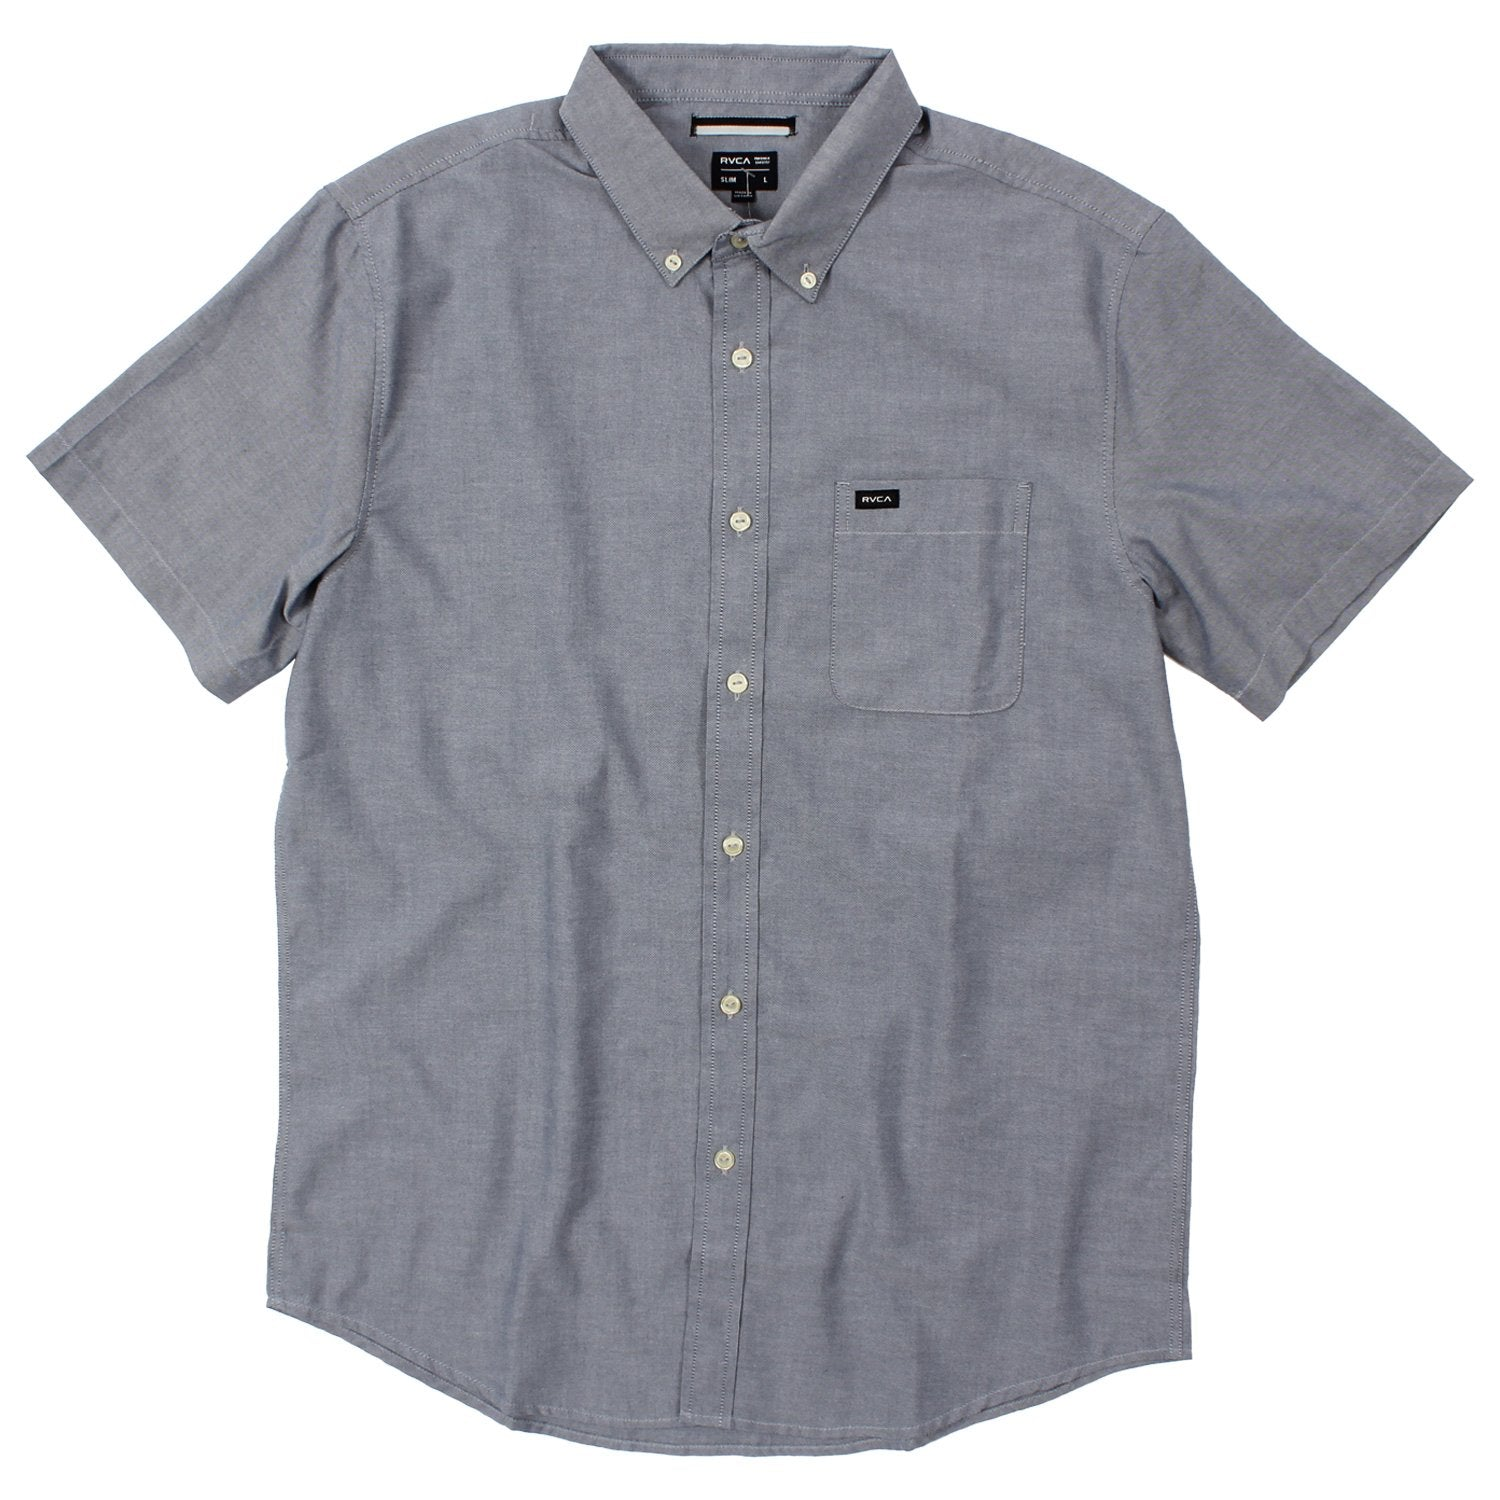 Men's RVCA That'll Do Short-Sleeved Woven Button Up Shirt